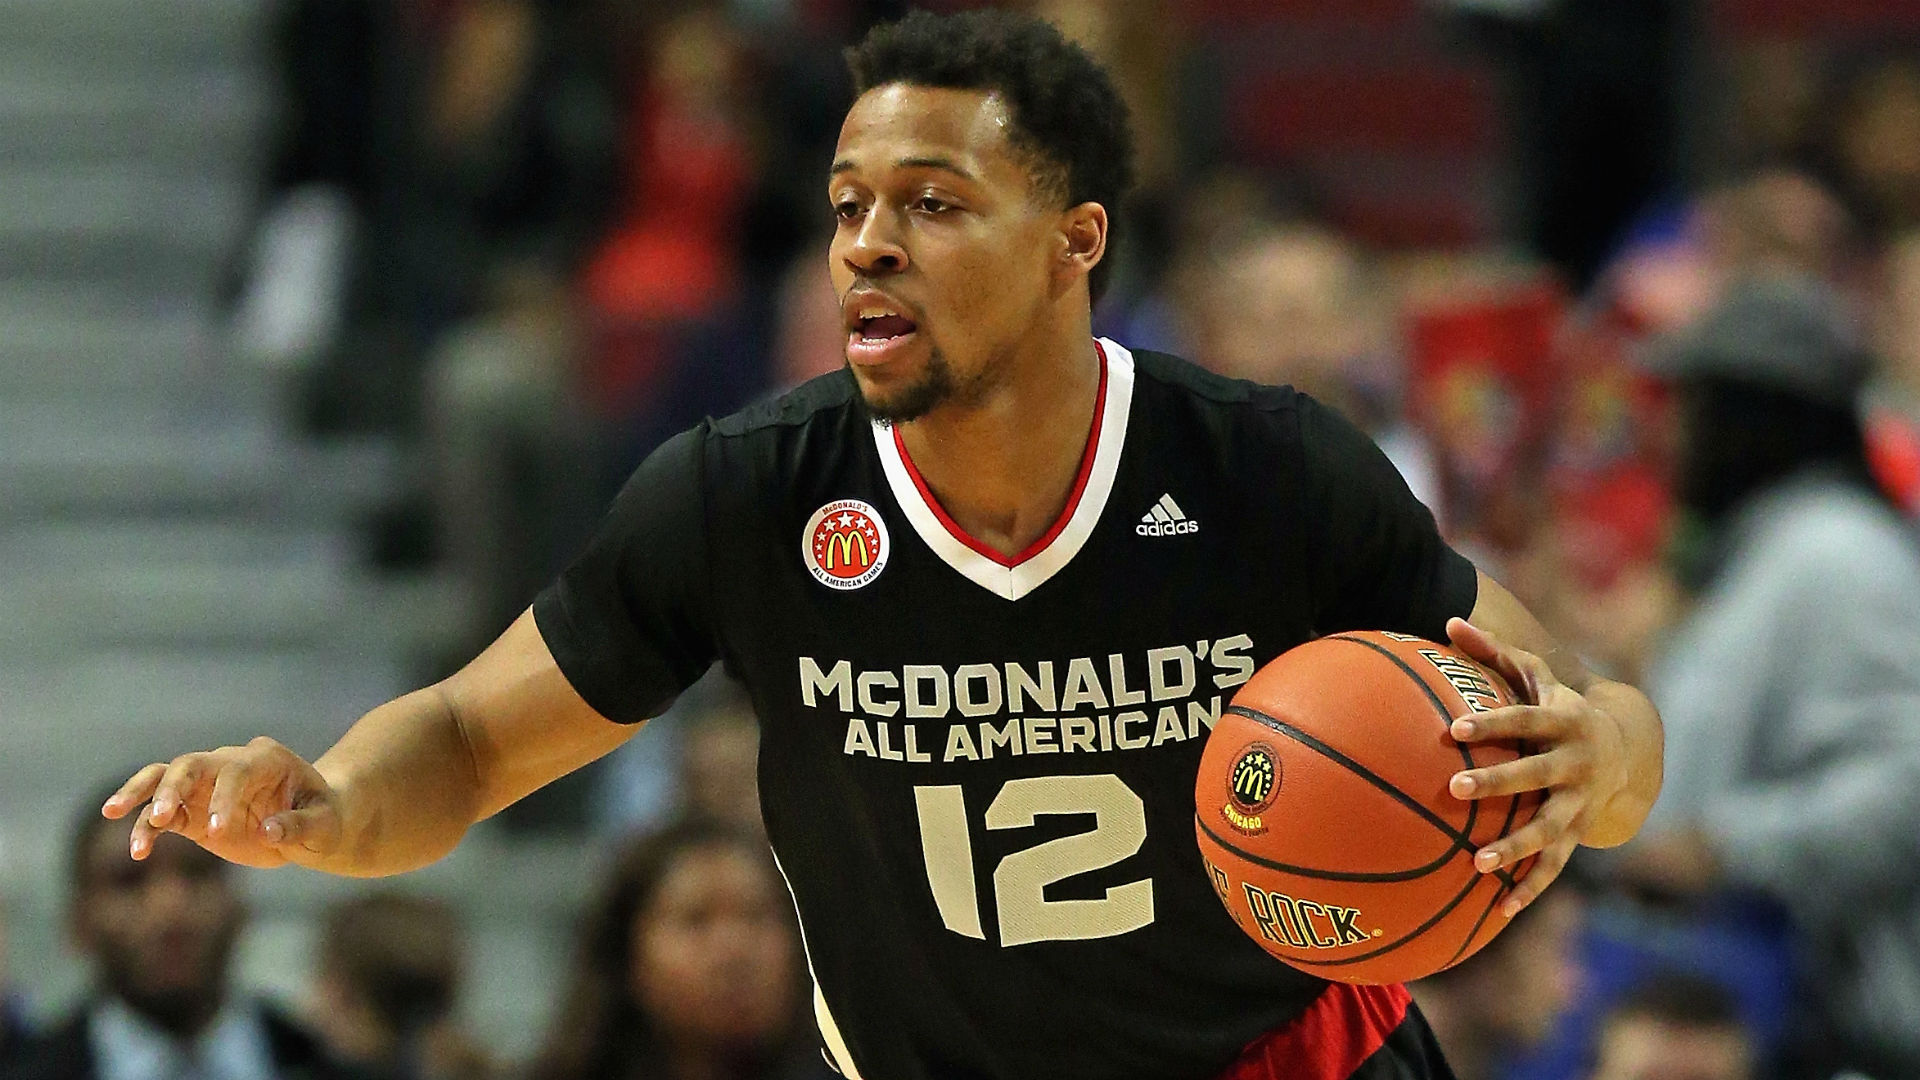 Arizona basketball: Wildcats' streak of McDonald's All-Americans could end